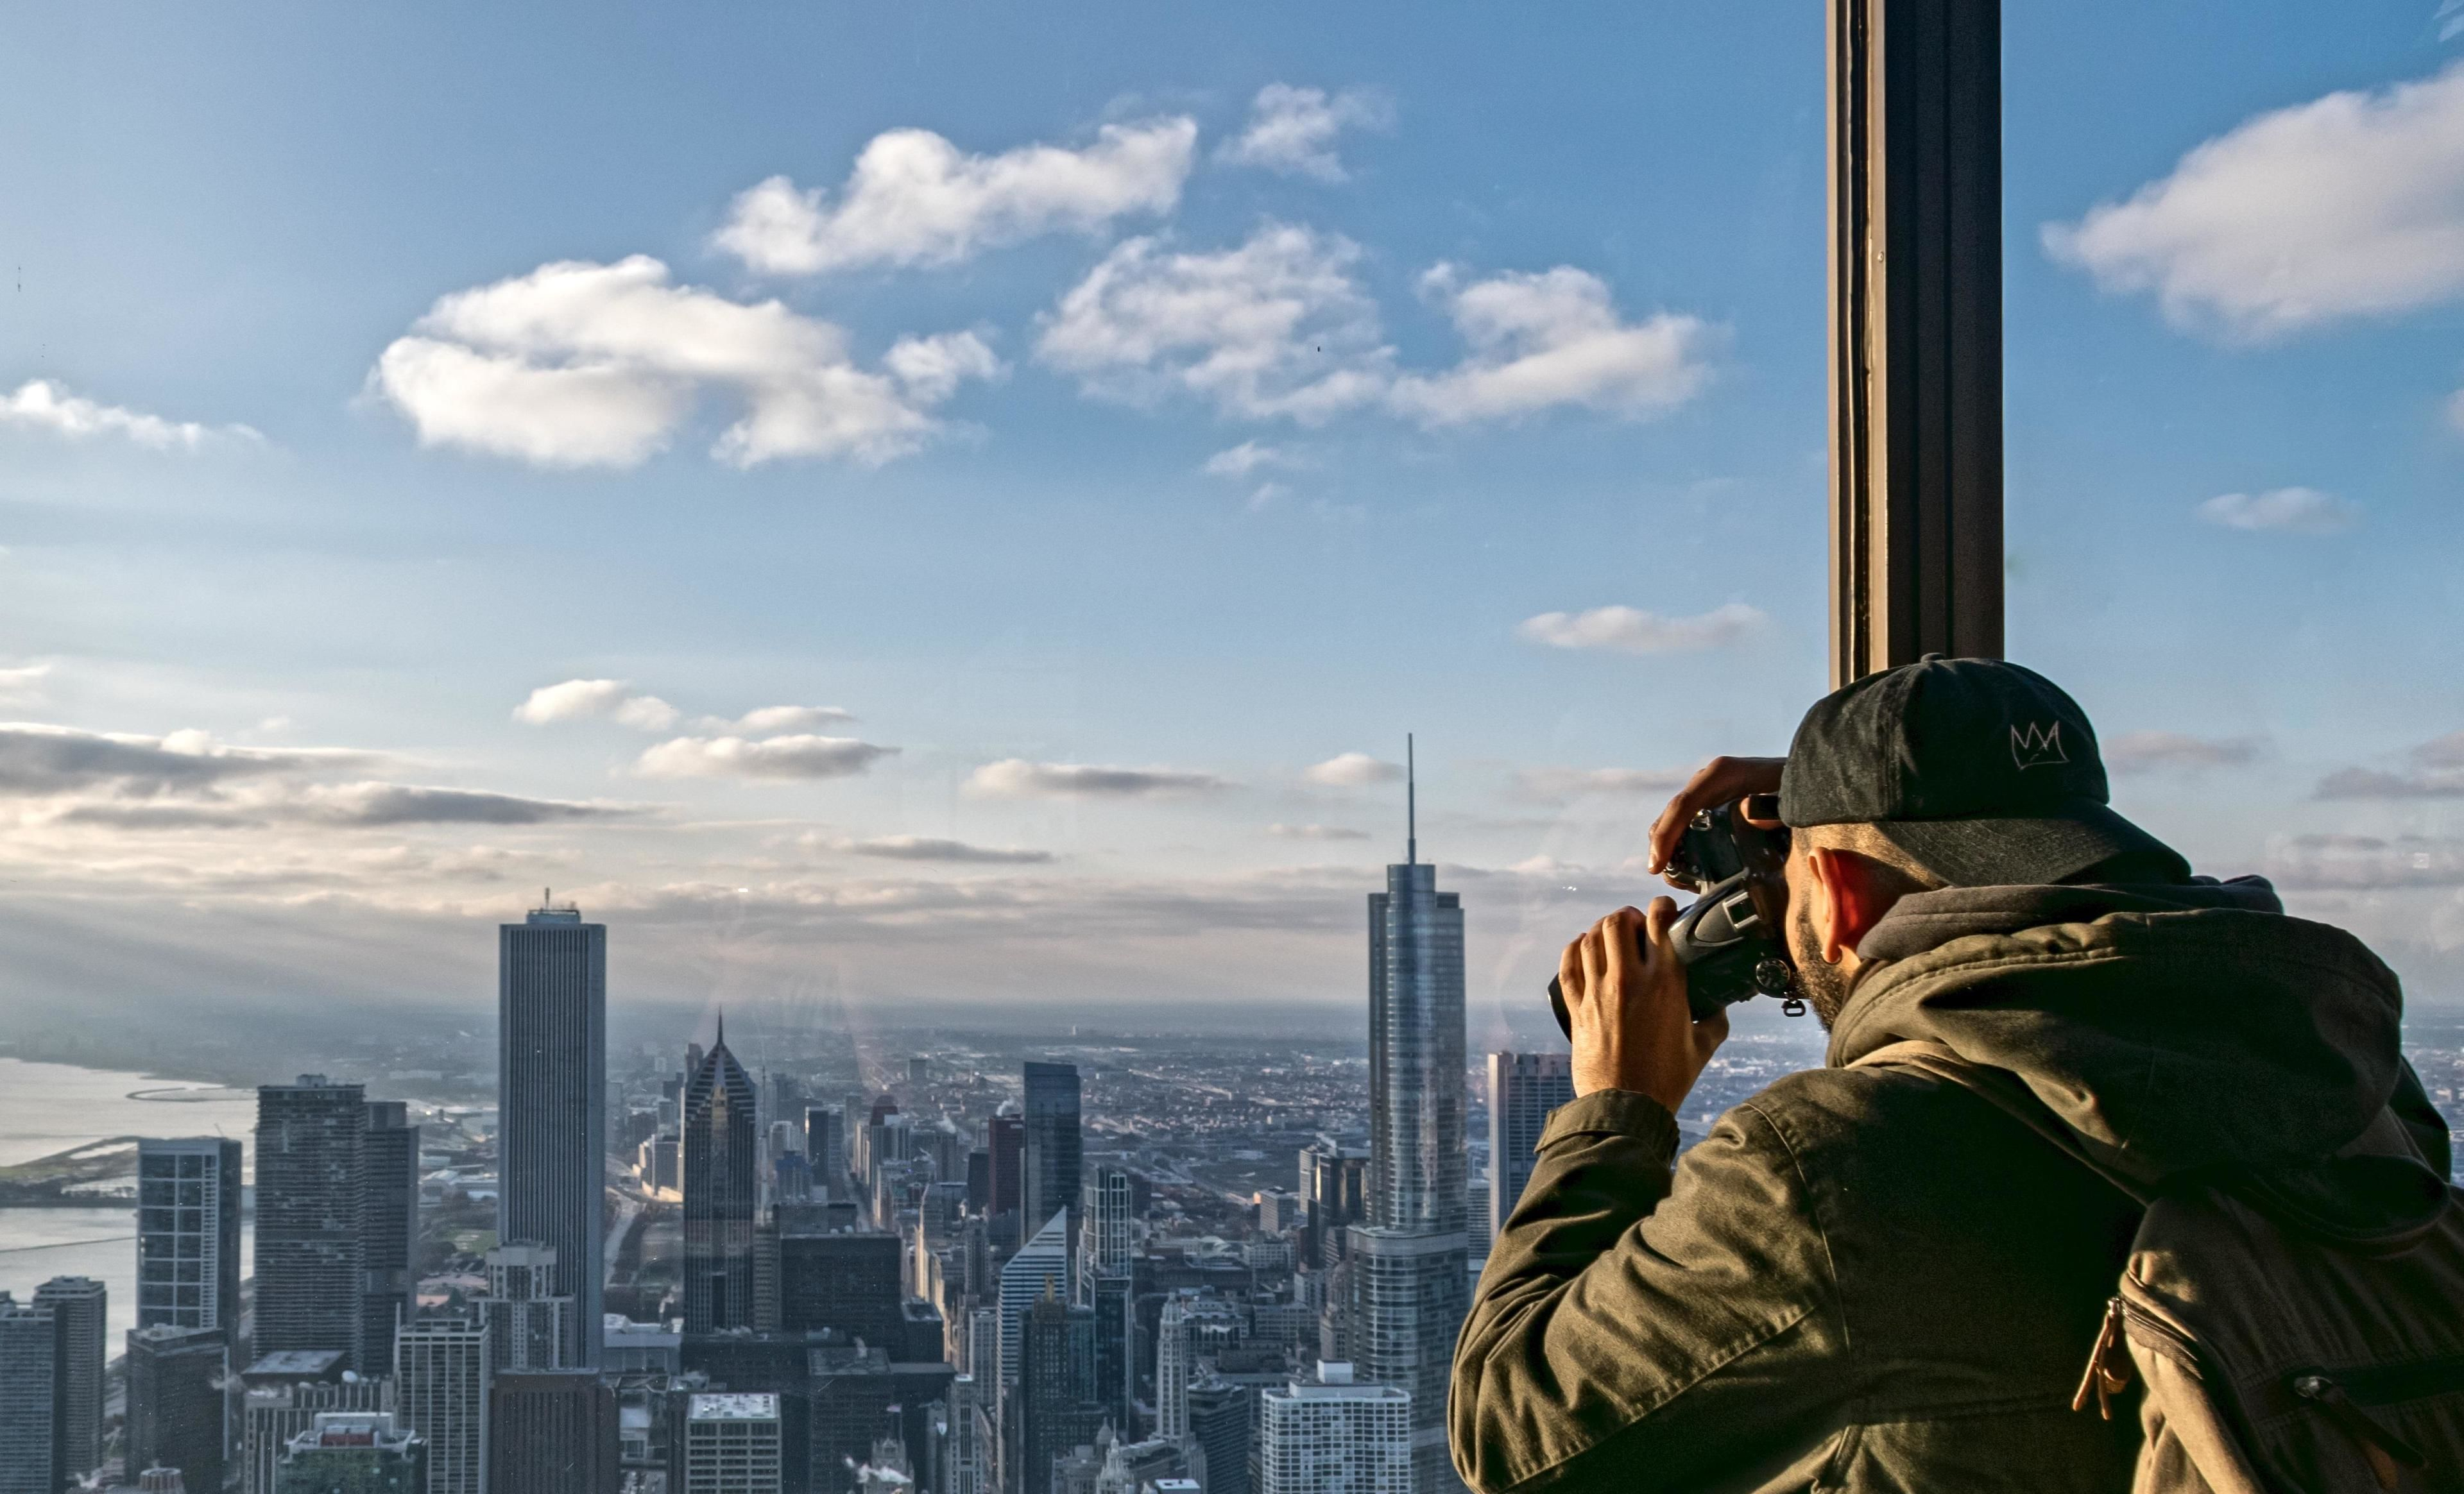 HISTORIC CHICAGO - South Side Tour & 360 CHICAGO Observatory